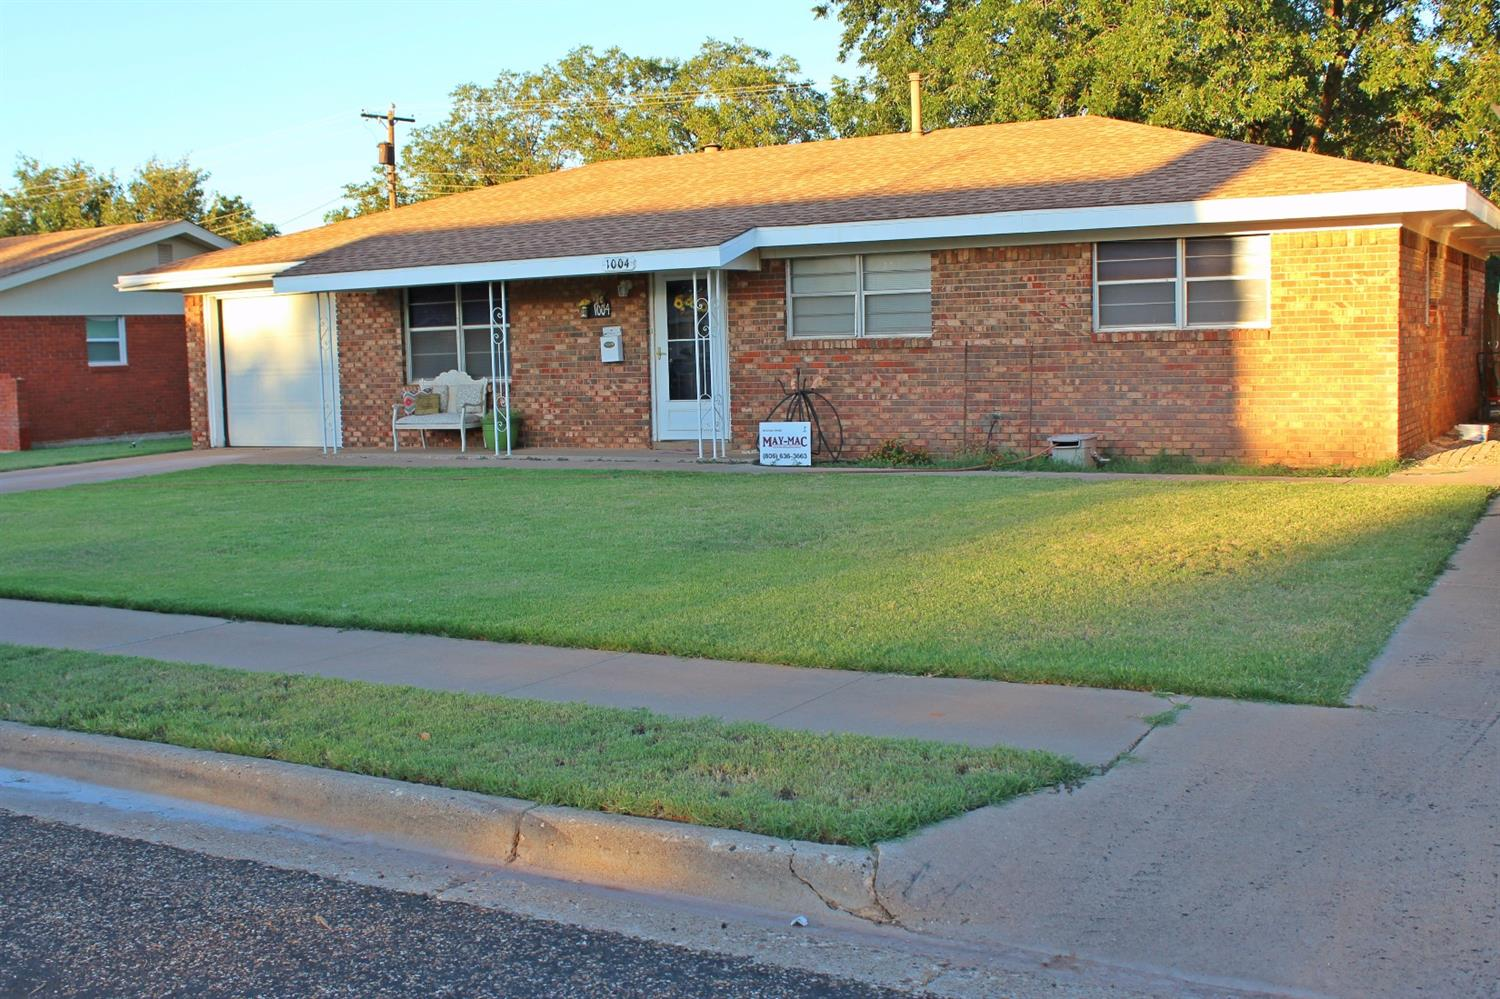 Photo of 1004 South Pecos Street  Brownfield  TX